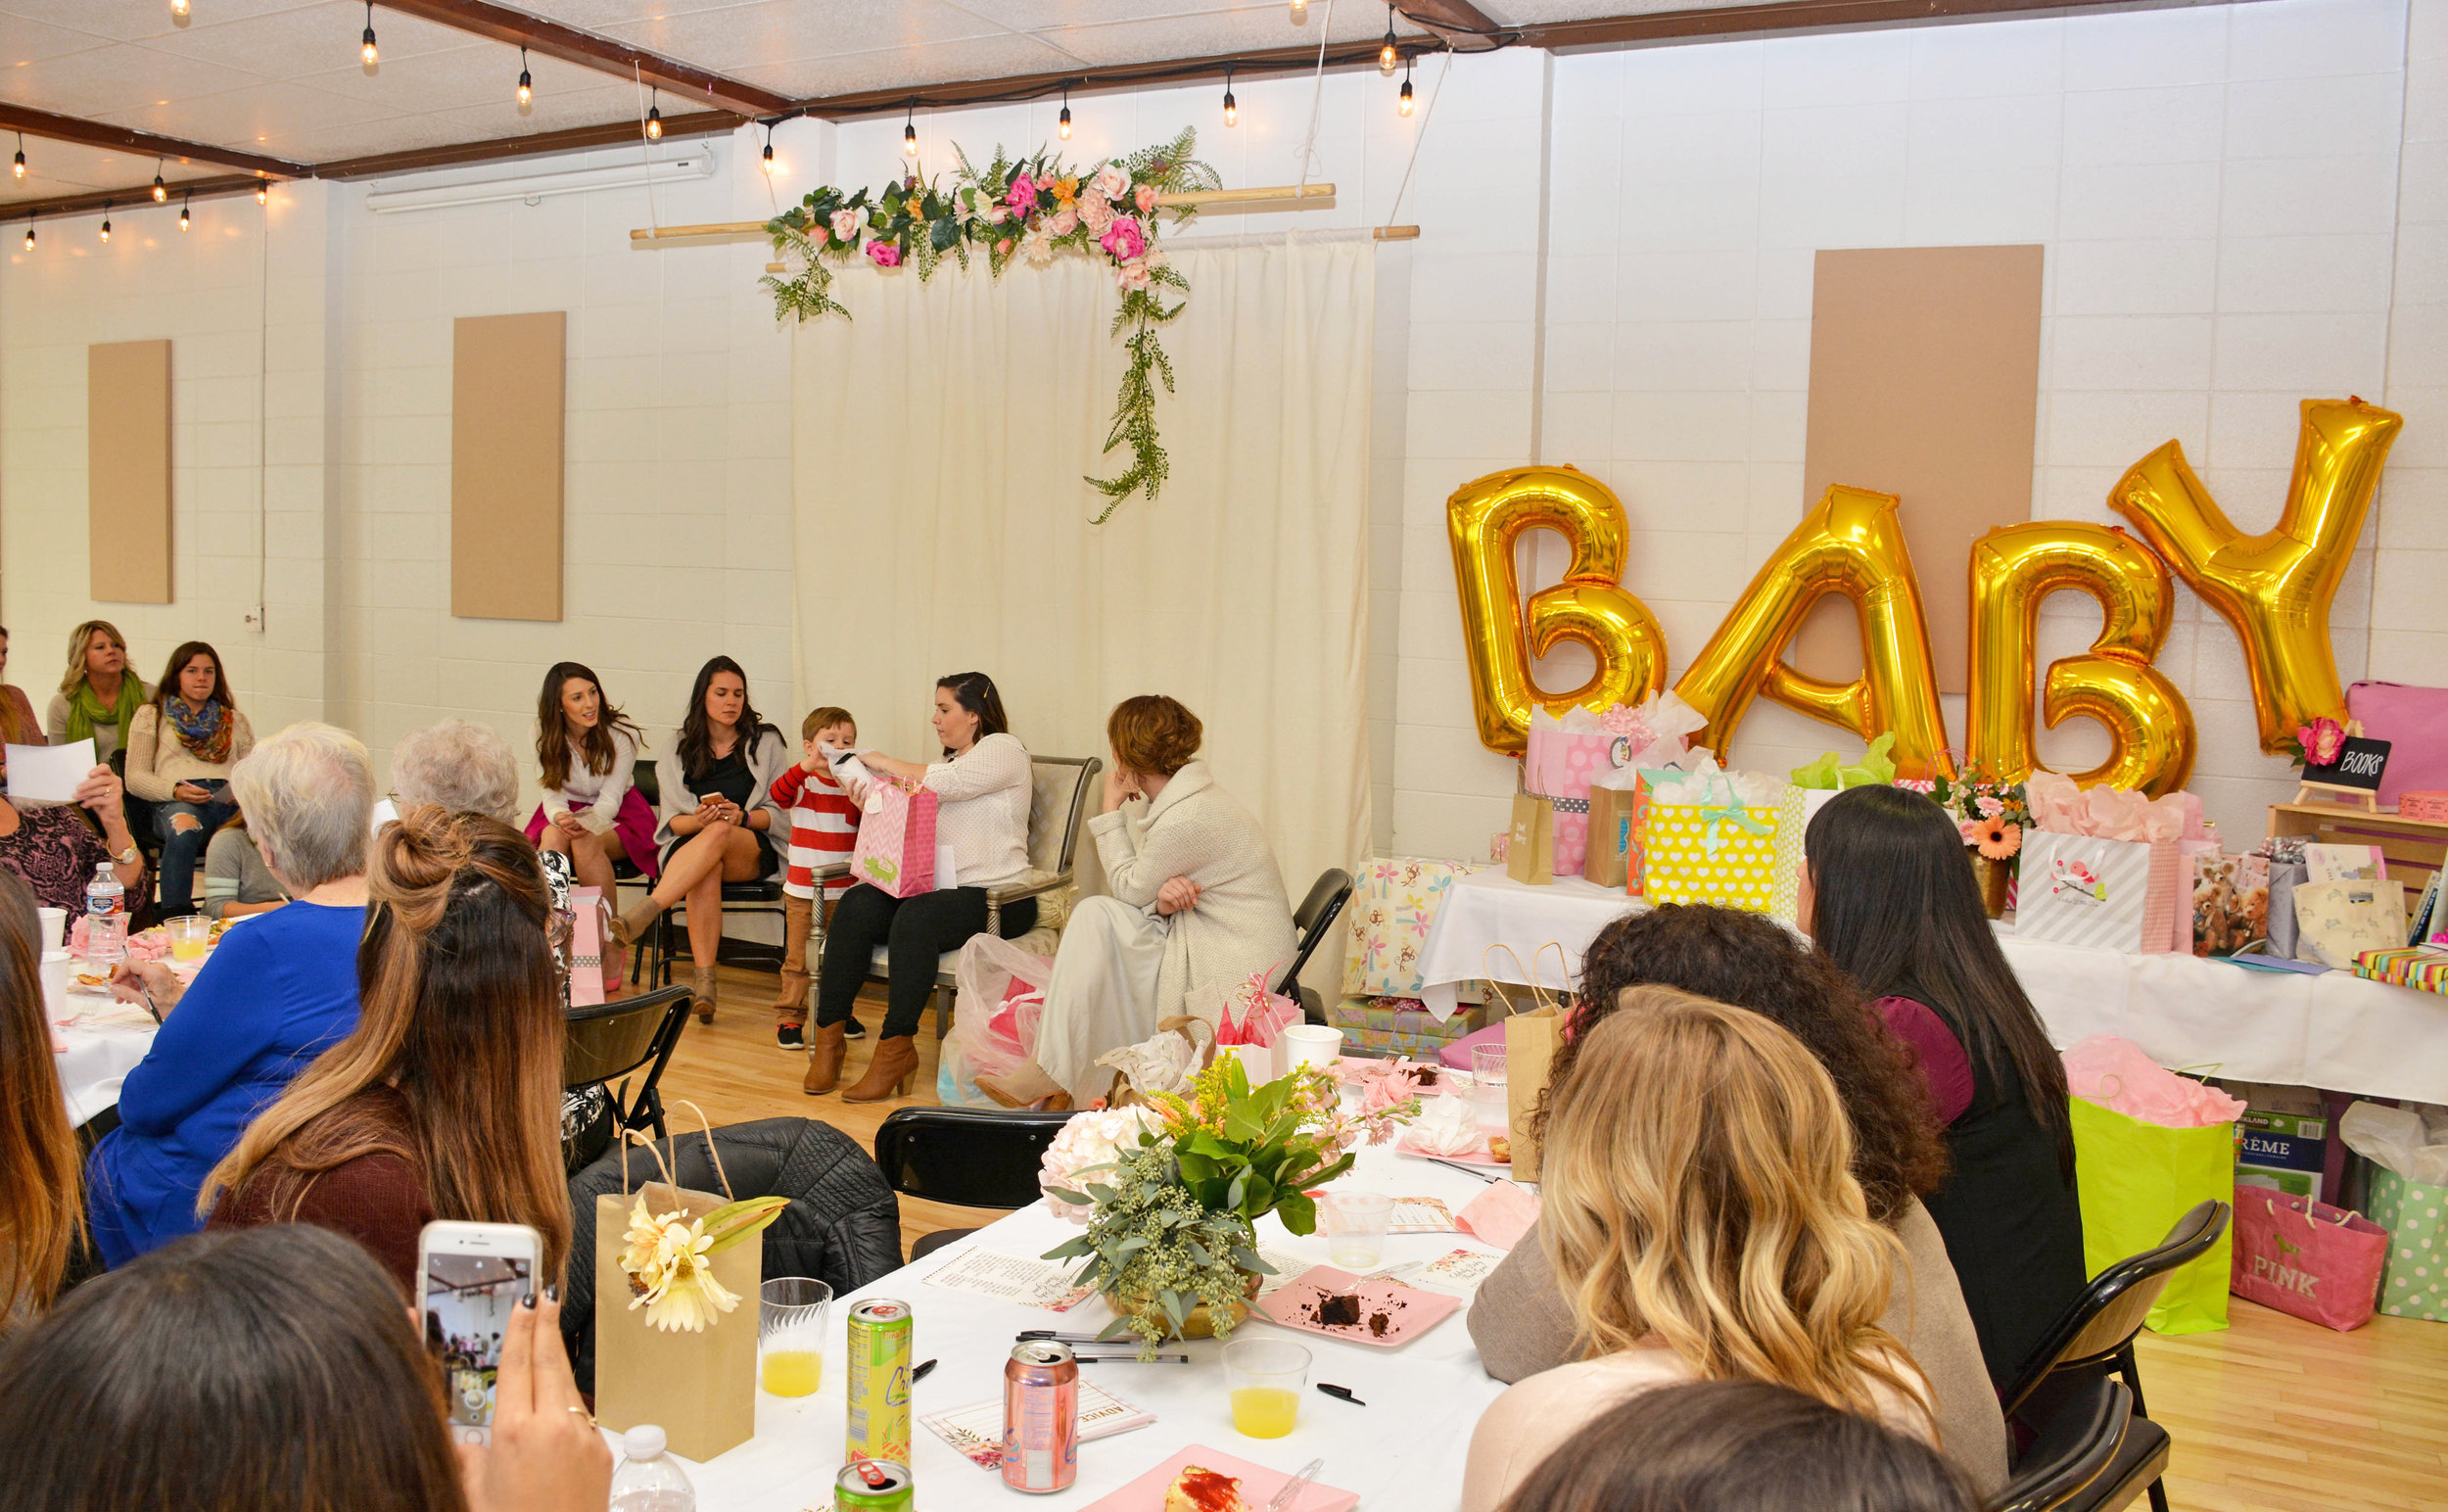 A great place for baby and bridal showers